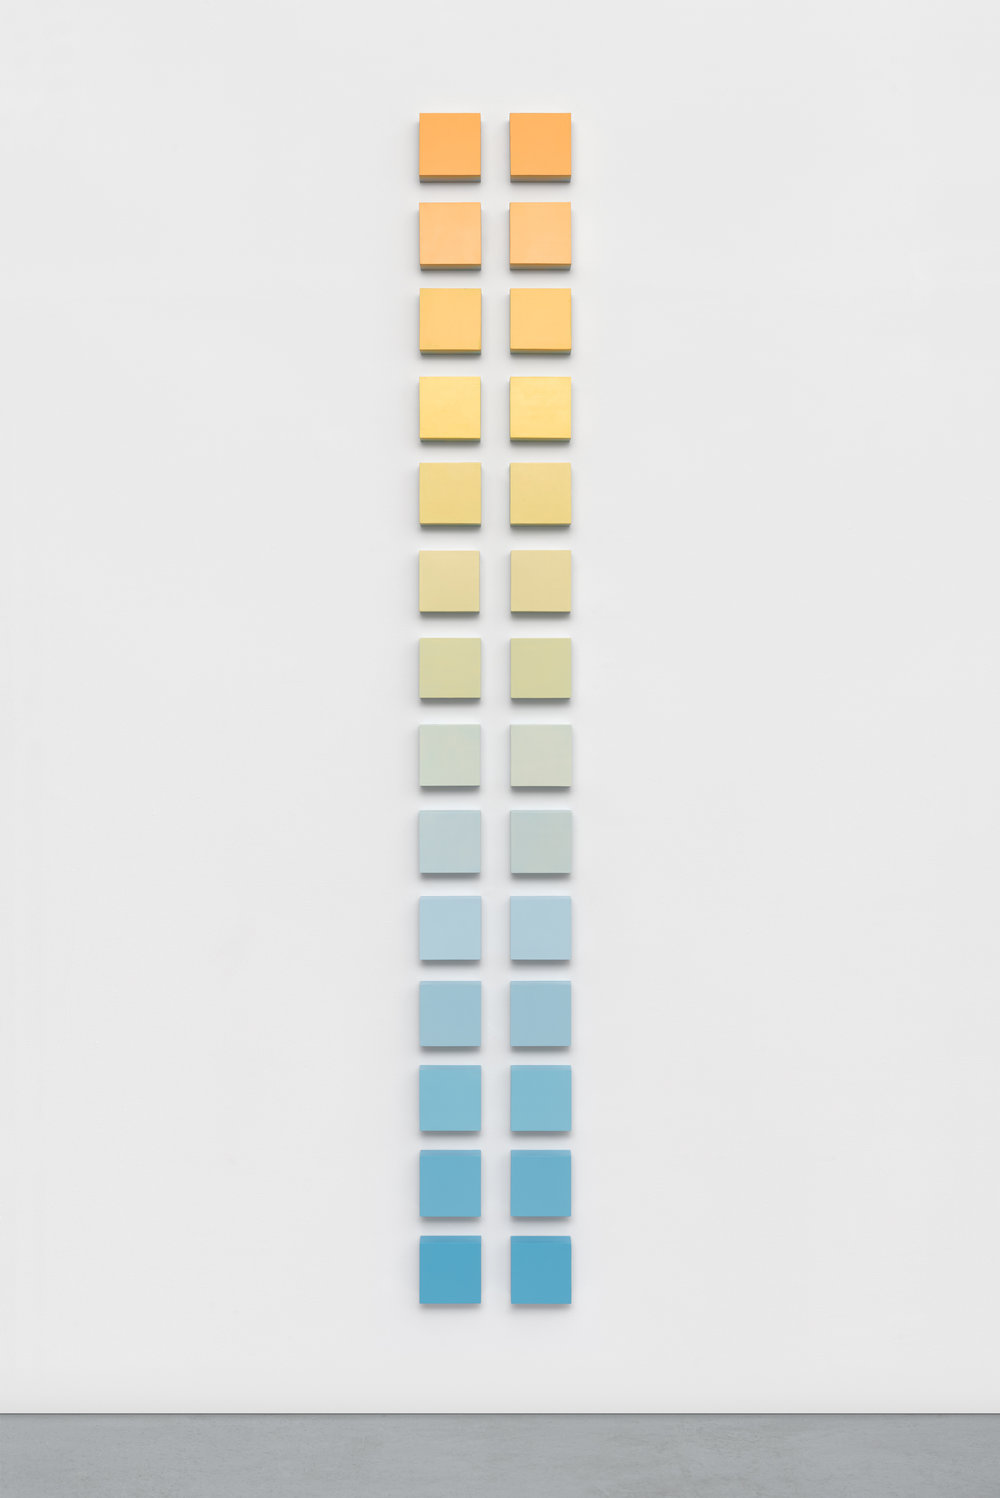 Marigold Ladder, 2016, acrylic, phosphorescent and interference color on 28 5x5x2 inch panels, 96x12x2 inches overall